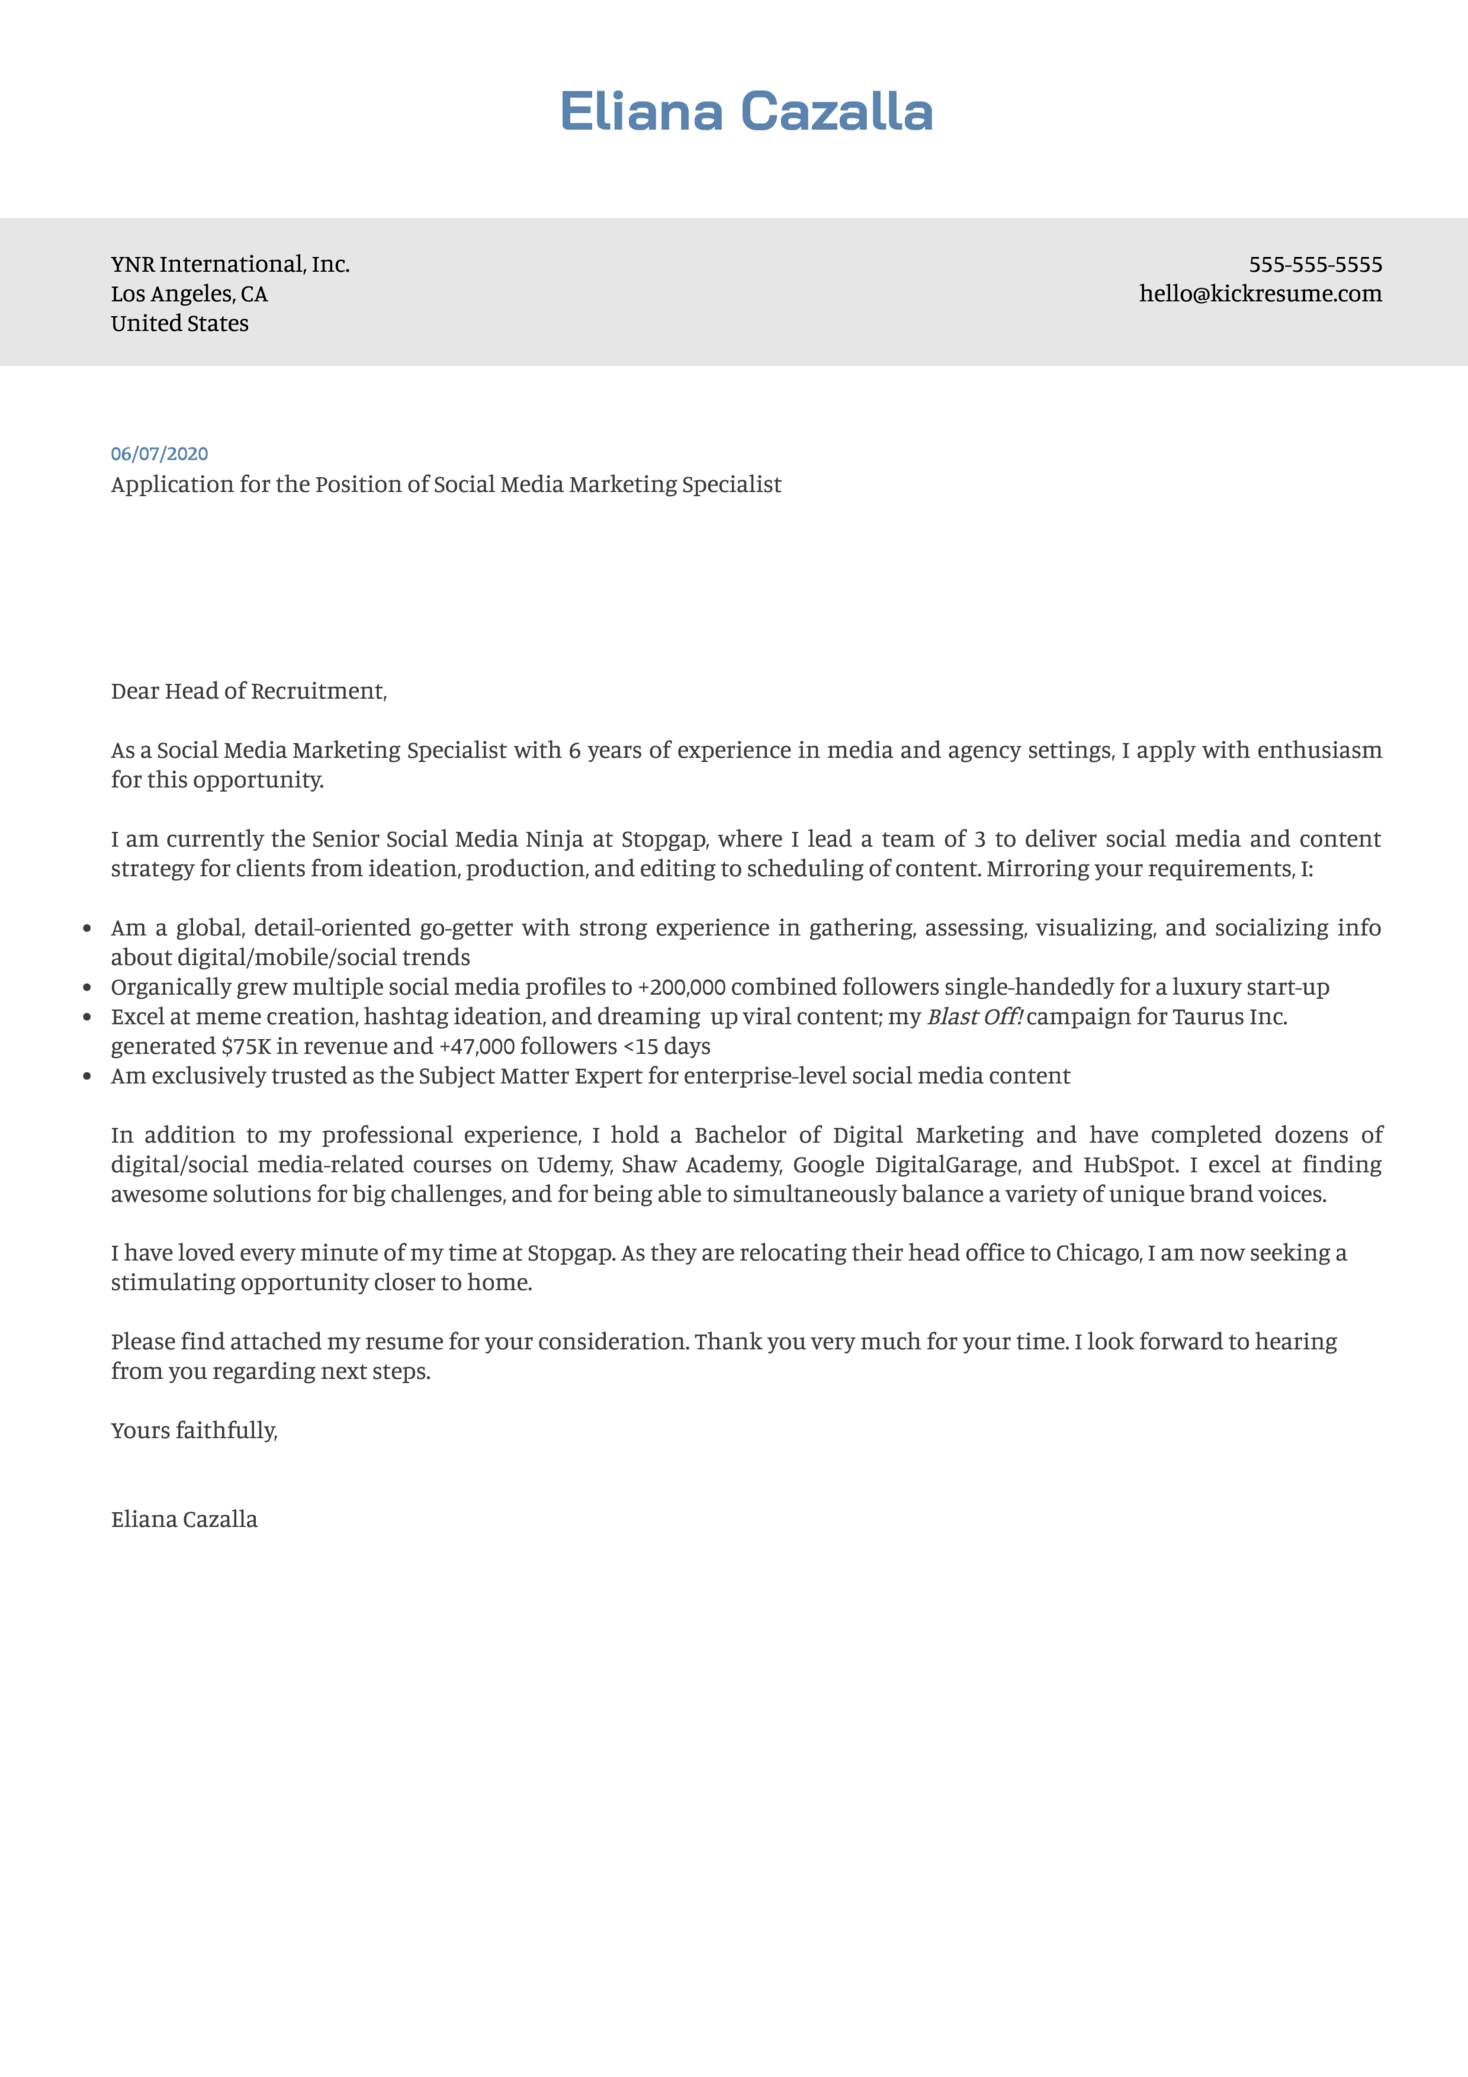 Free Social Media Marketing Cover Letter Example